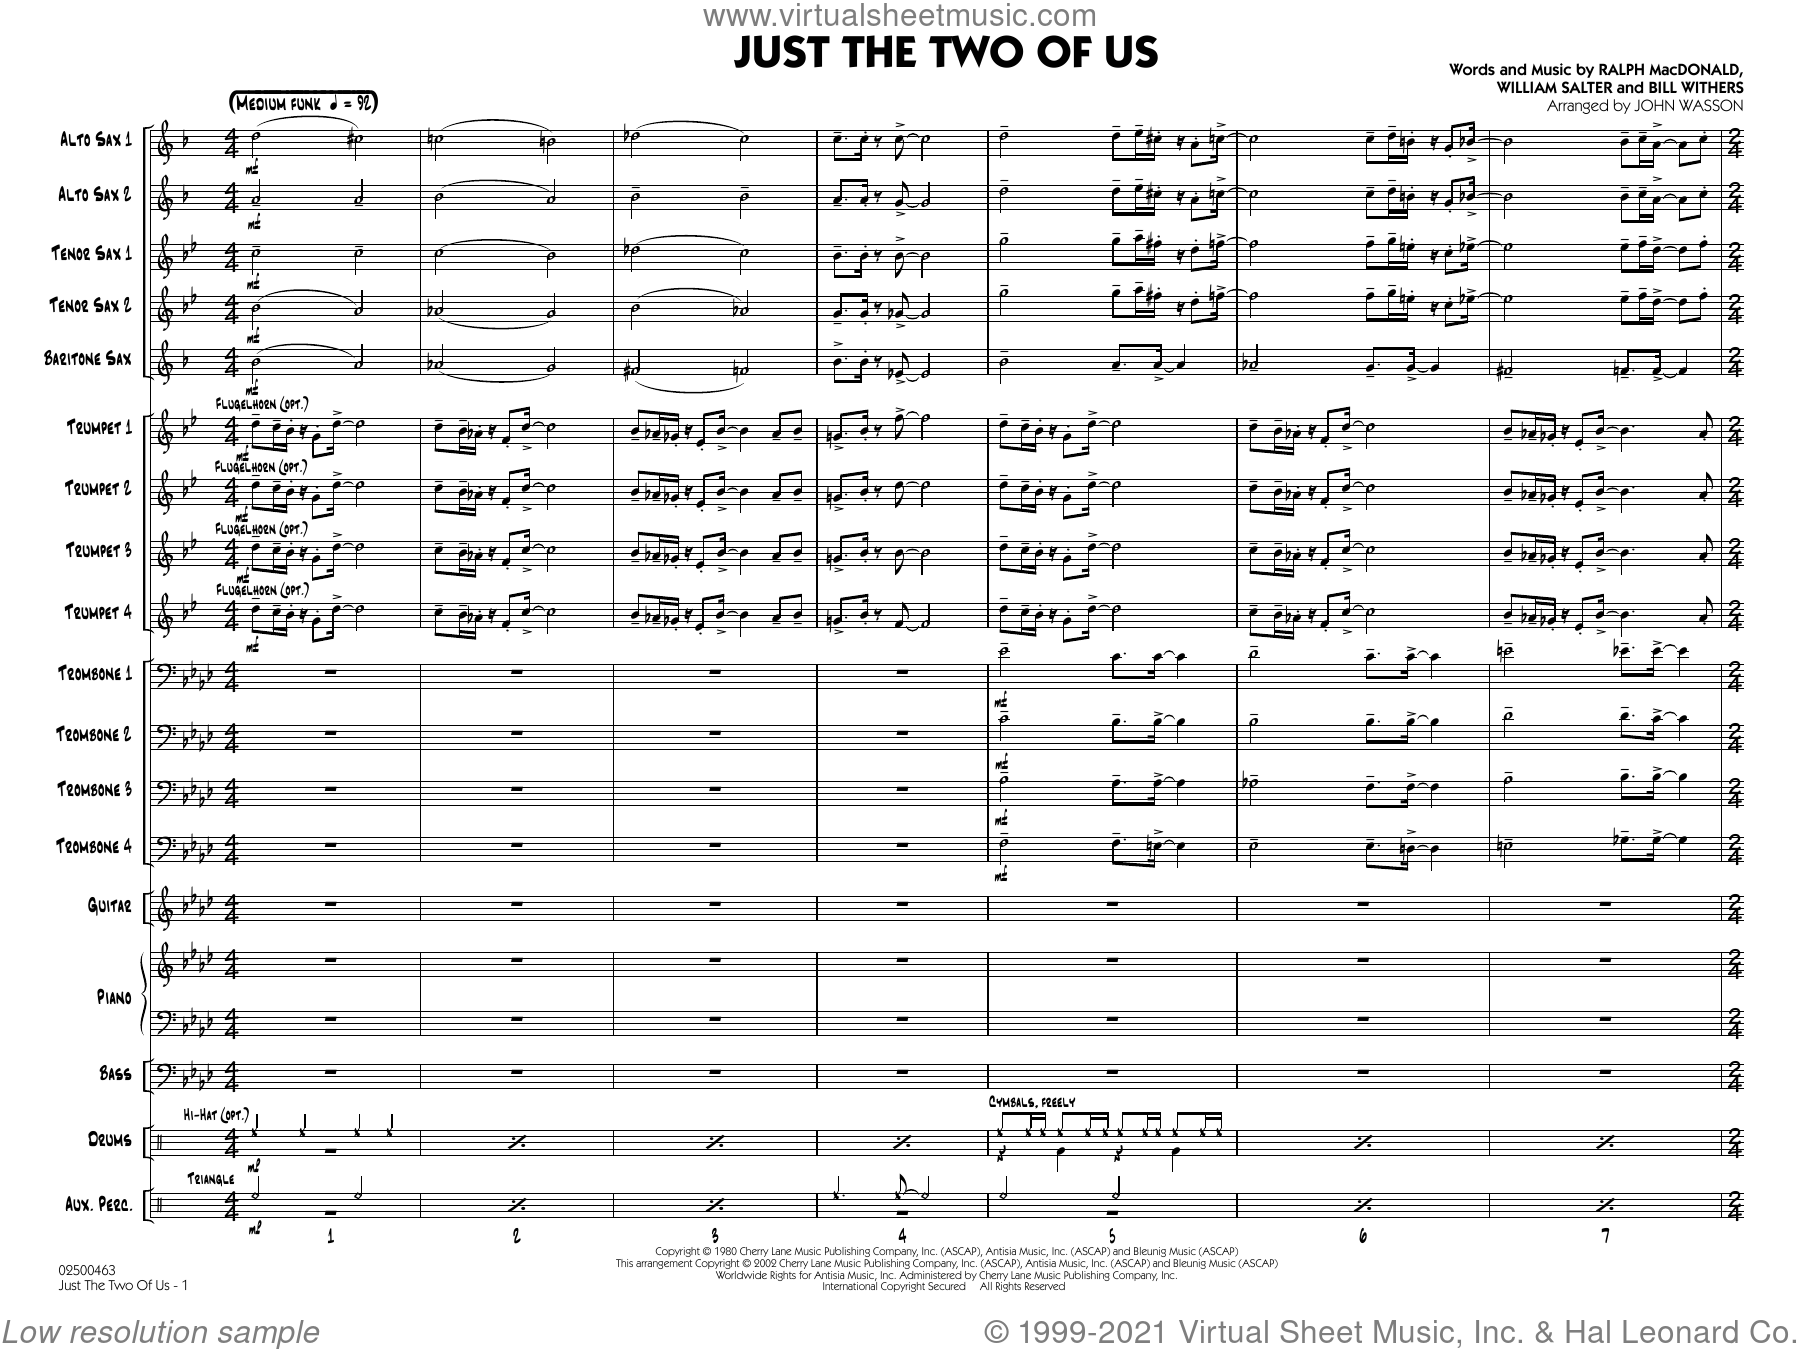 Just the Two of Us (arr. John Wasson) (COMPLETE) sheet music for jazz band by Bill Withers, Grover Washington Jr. feat. Bill Withers, John Wasson, Ralph MacDonald and William Salter, intermediate skill level